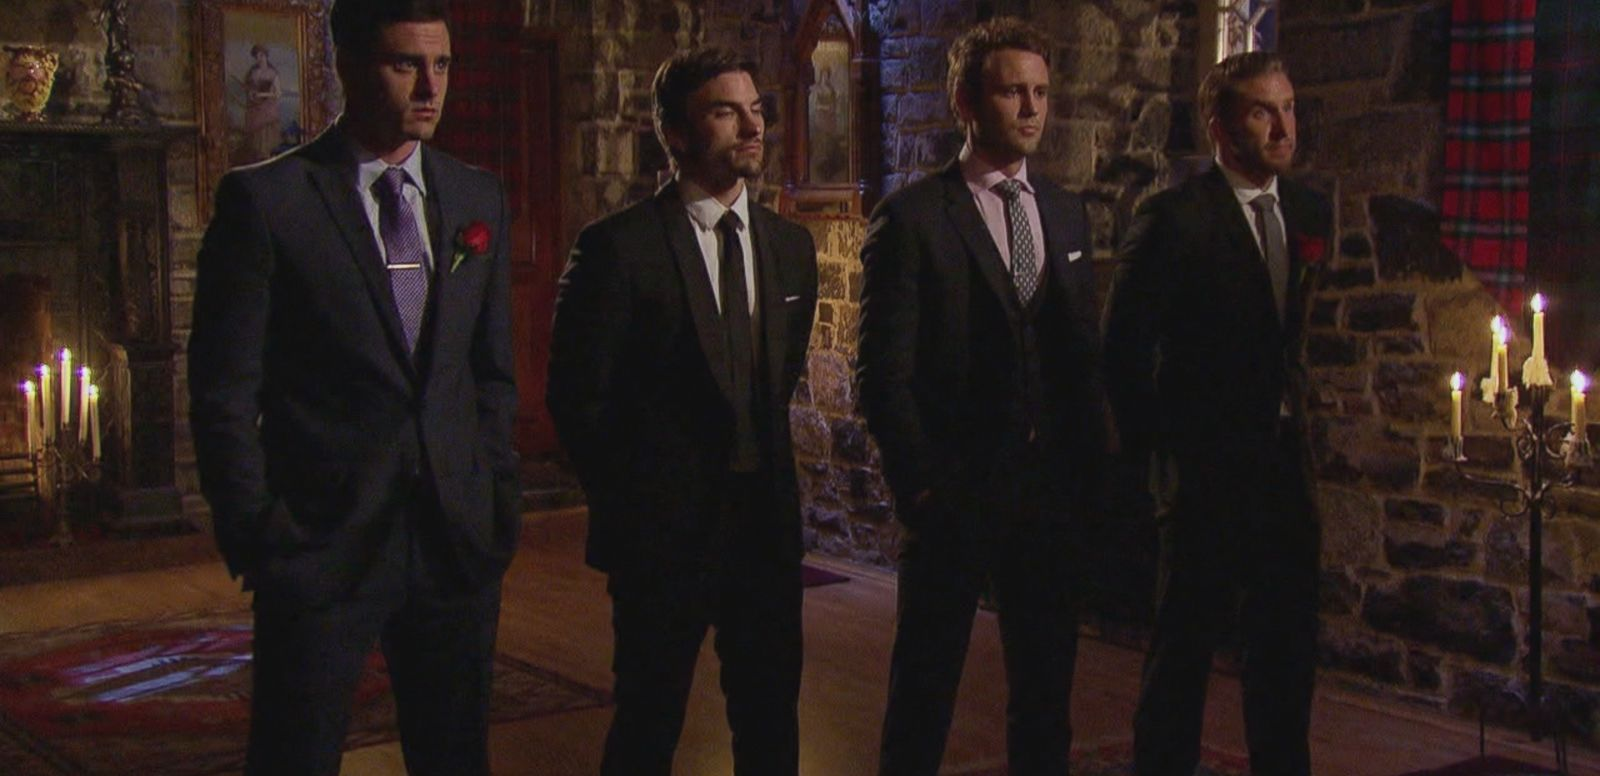 VIDEO: Kaitlyn Bristowe Narrows Down the Playing Field on 'The Bachelorette'